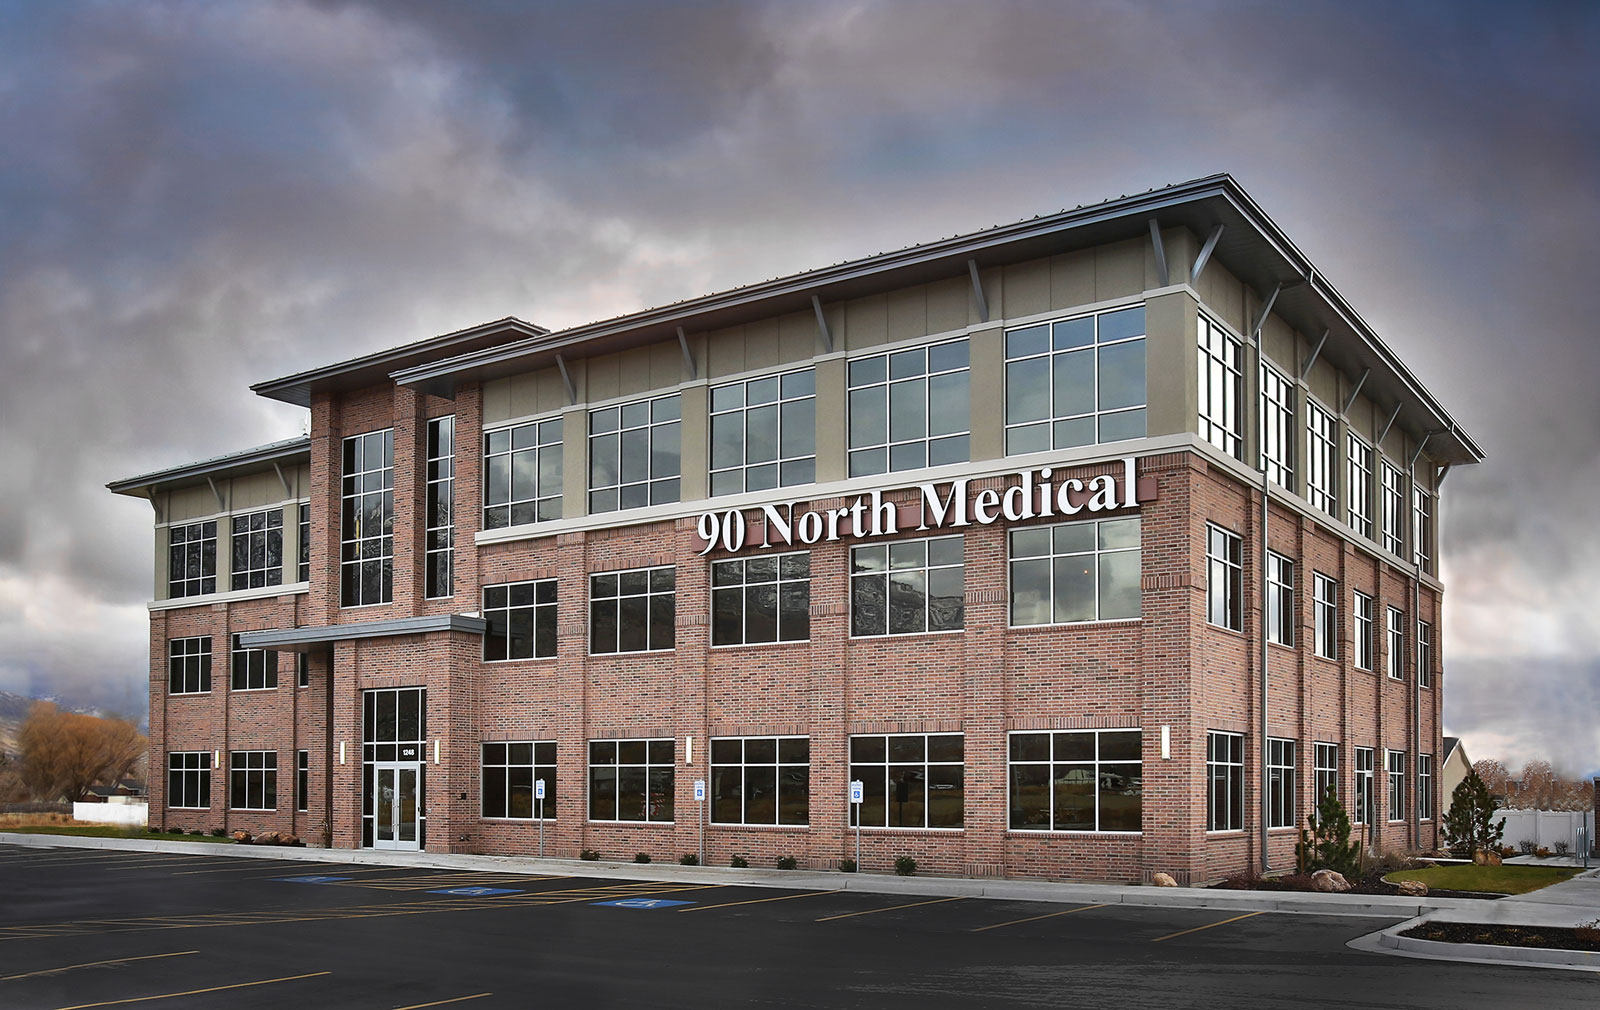 90 North Medical